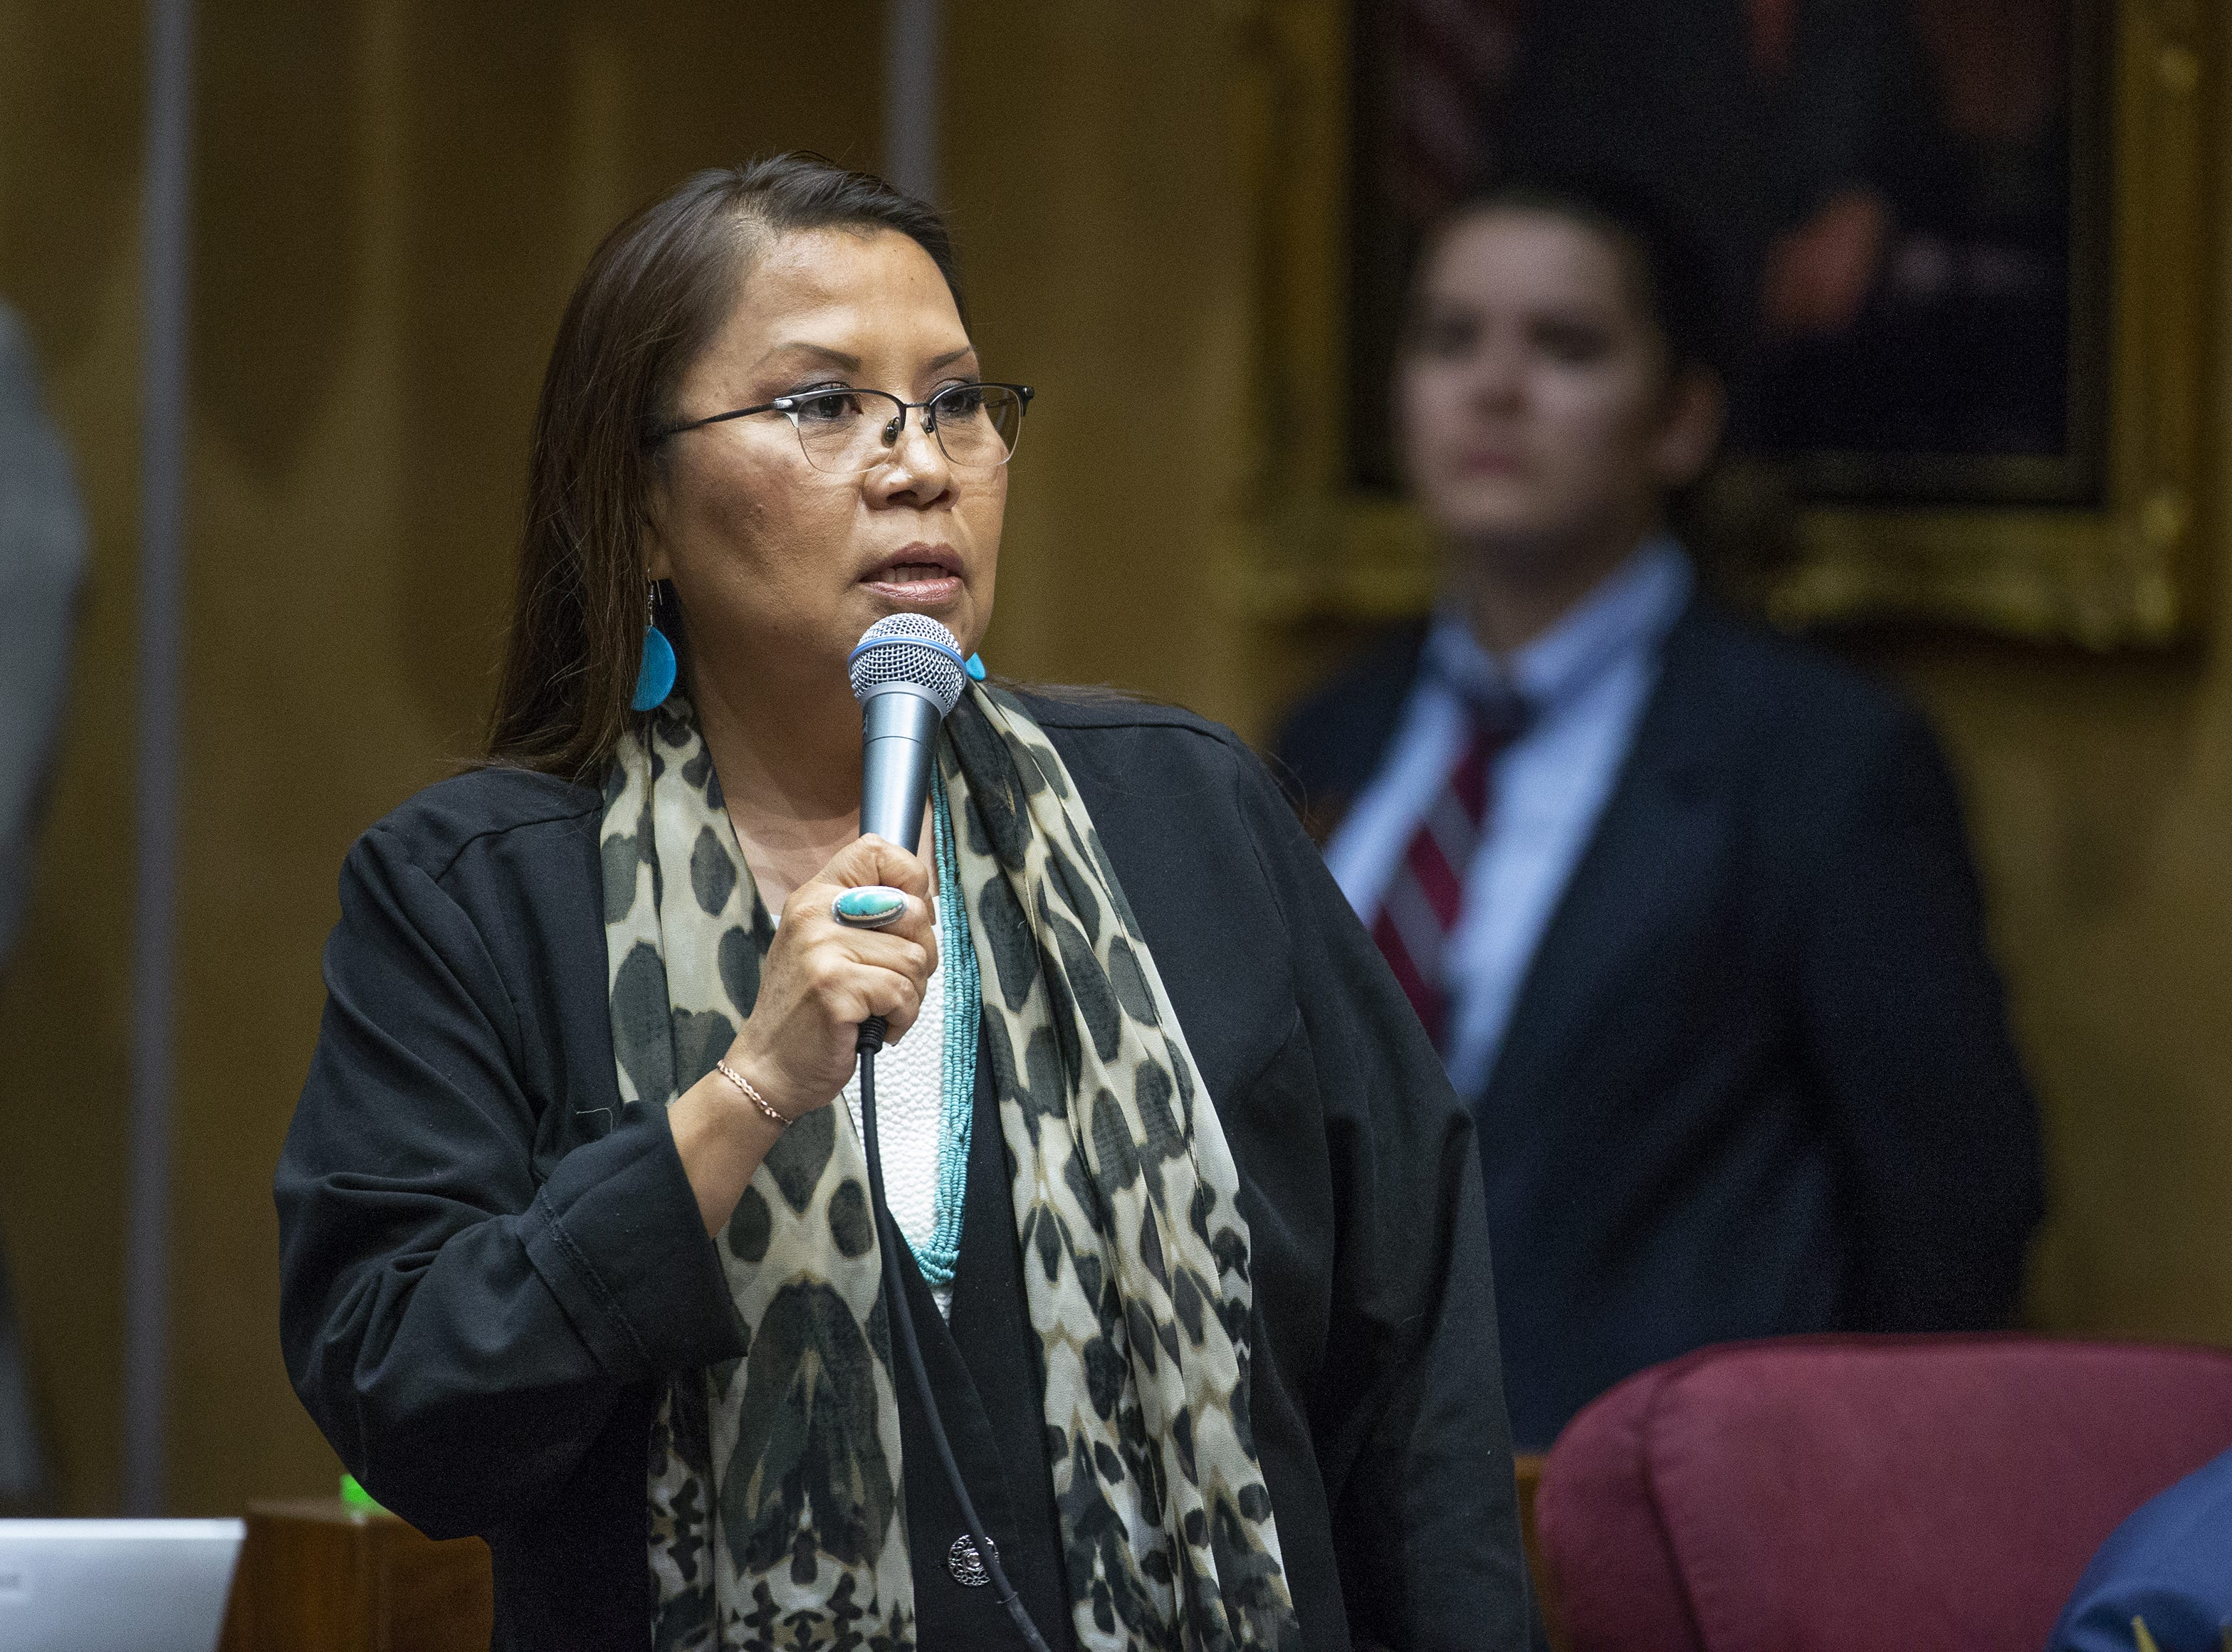 Sen. Jamescita Peshlakai voices her support for the ERA during a speech on the floor of the Senate at the Capitol in Phoenix, March 13, 2019.